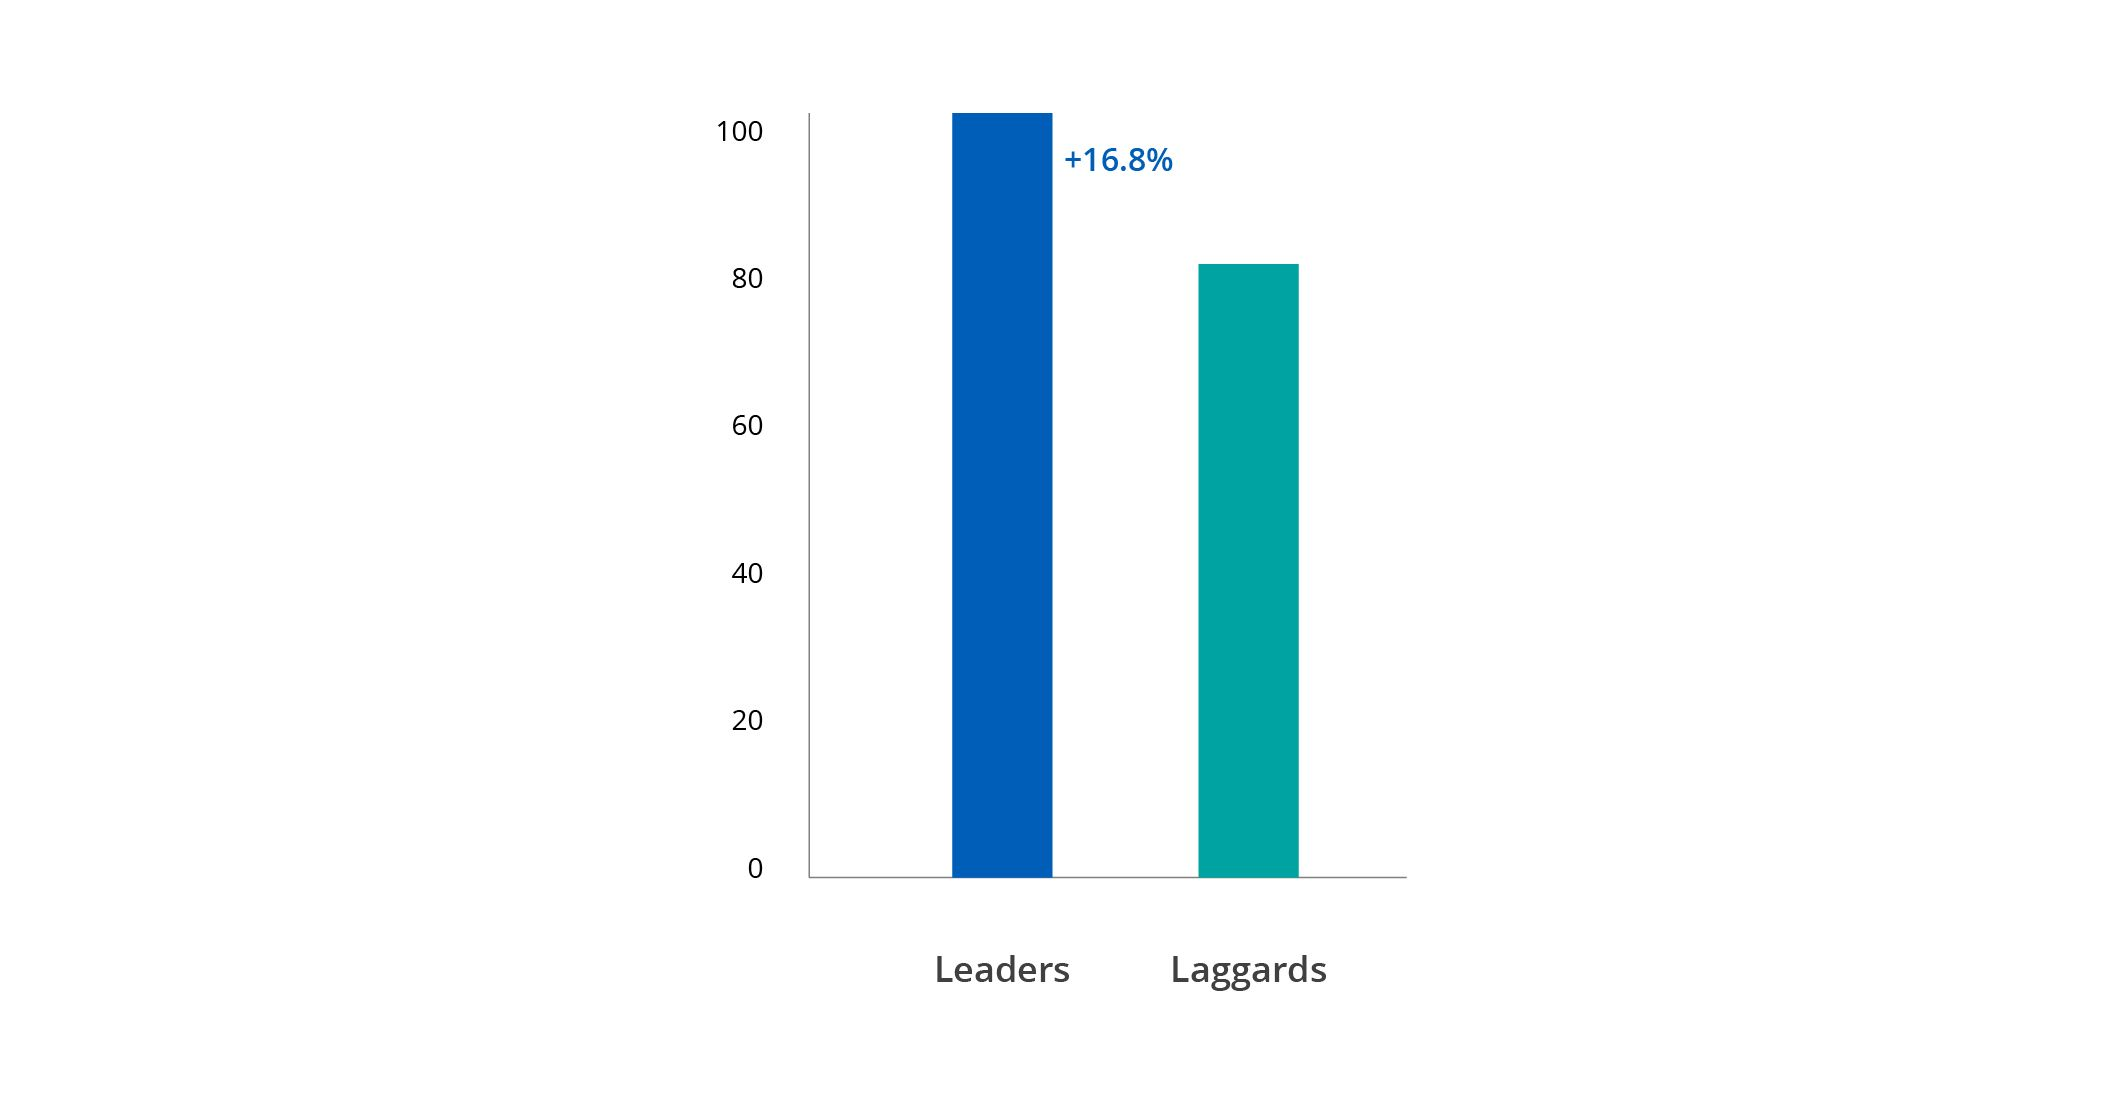 Graph showing leaders and laggards in esg